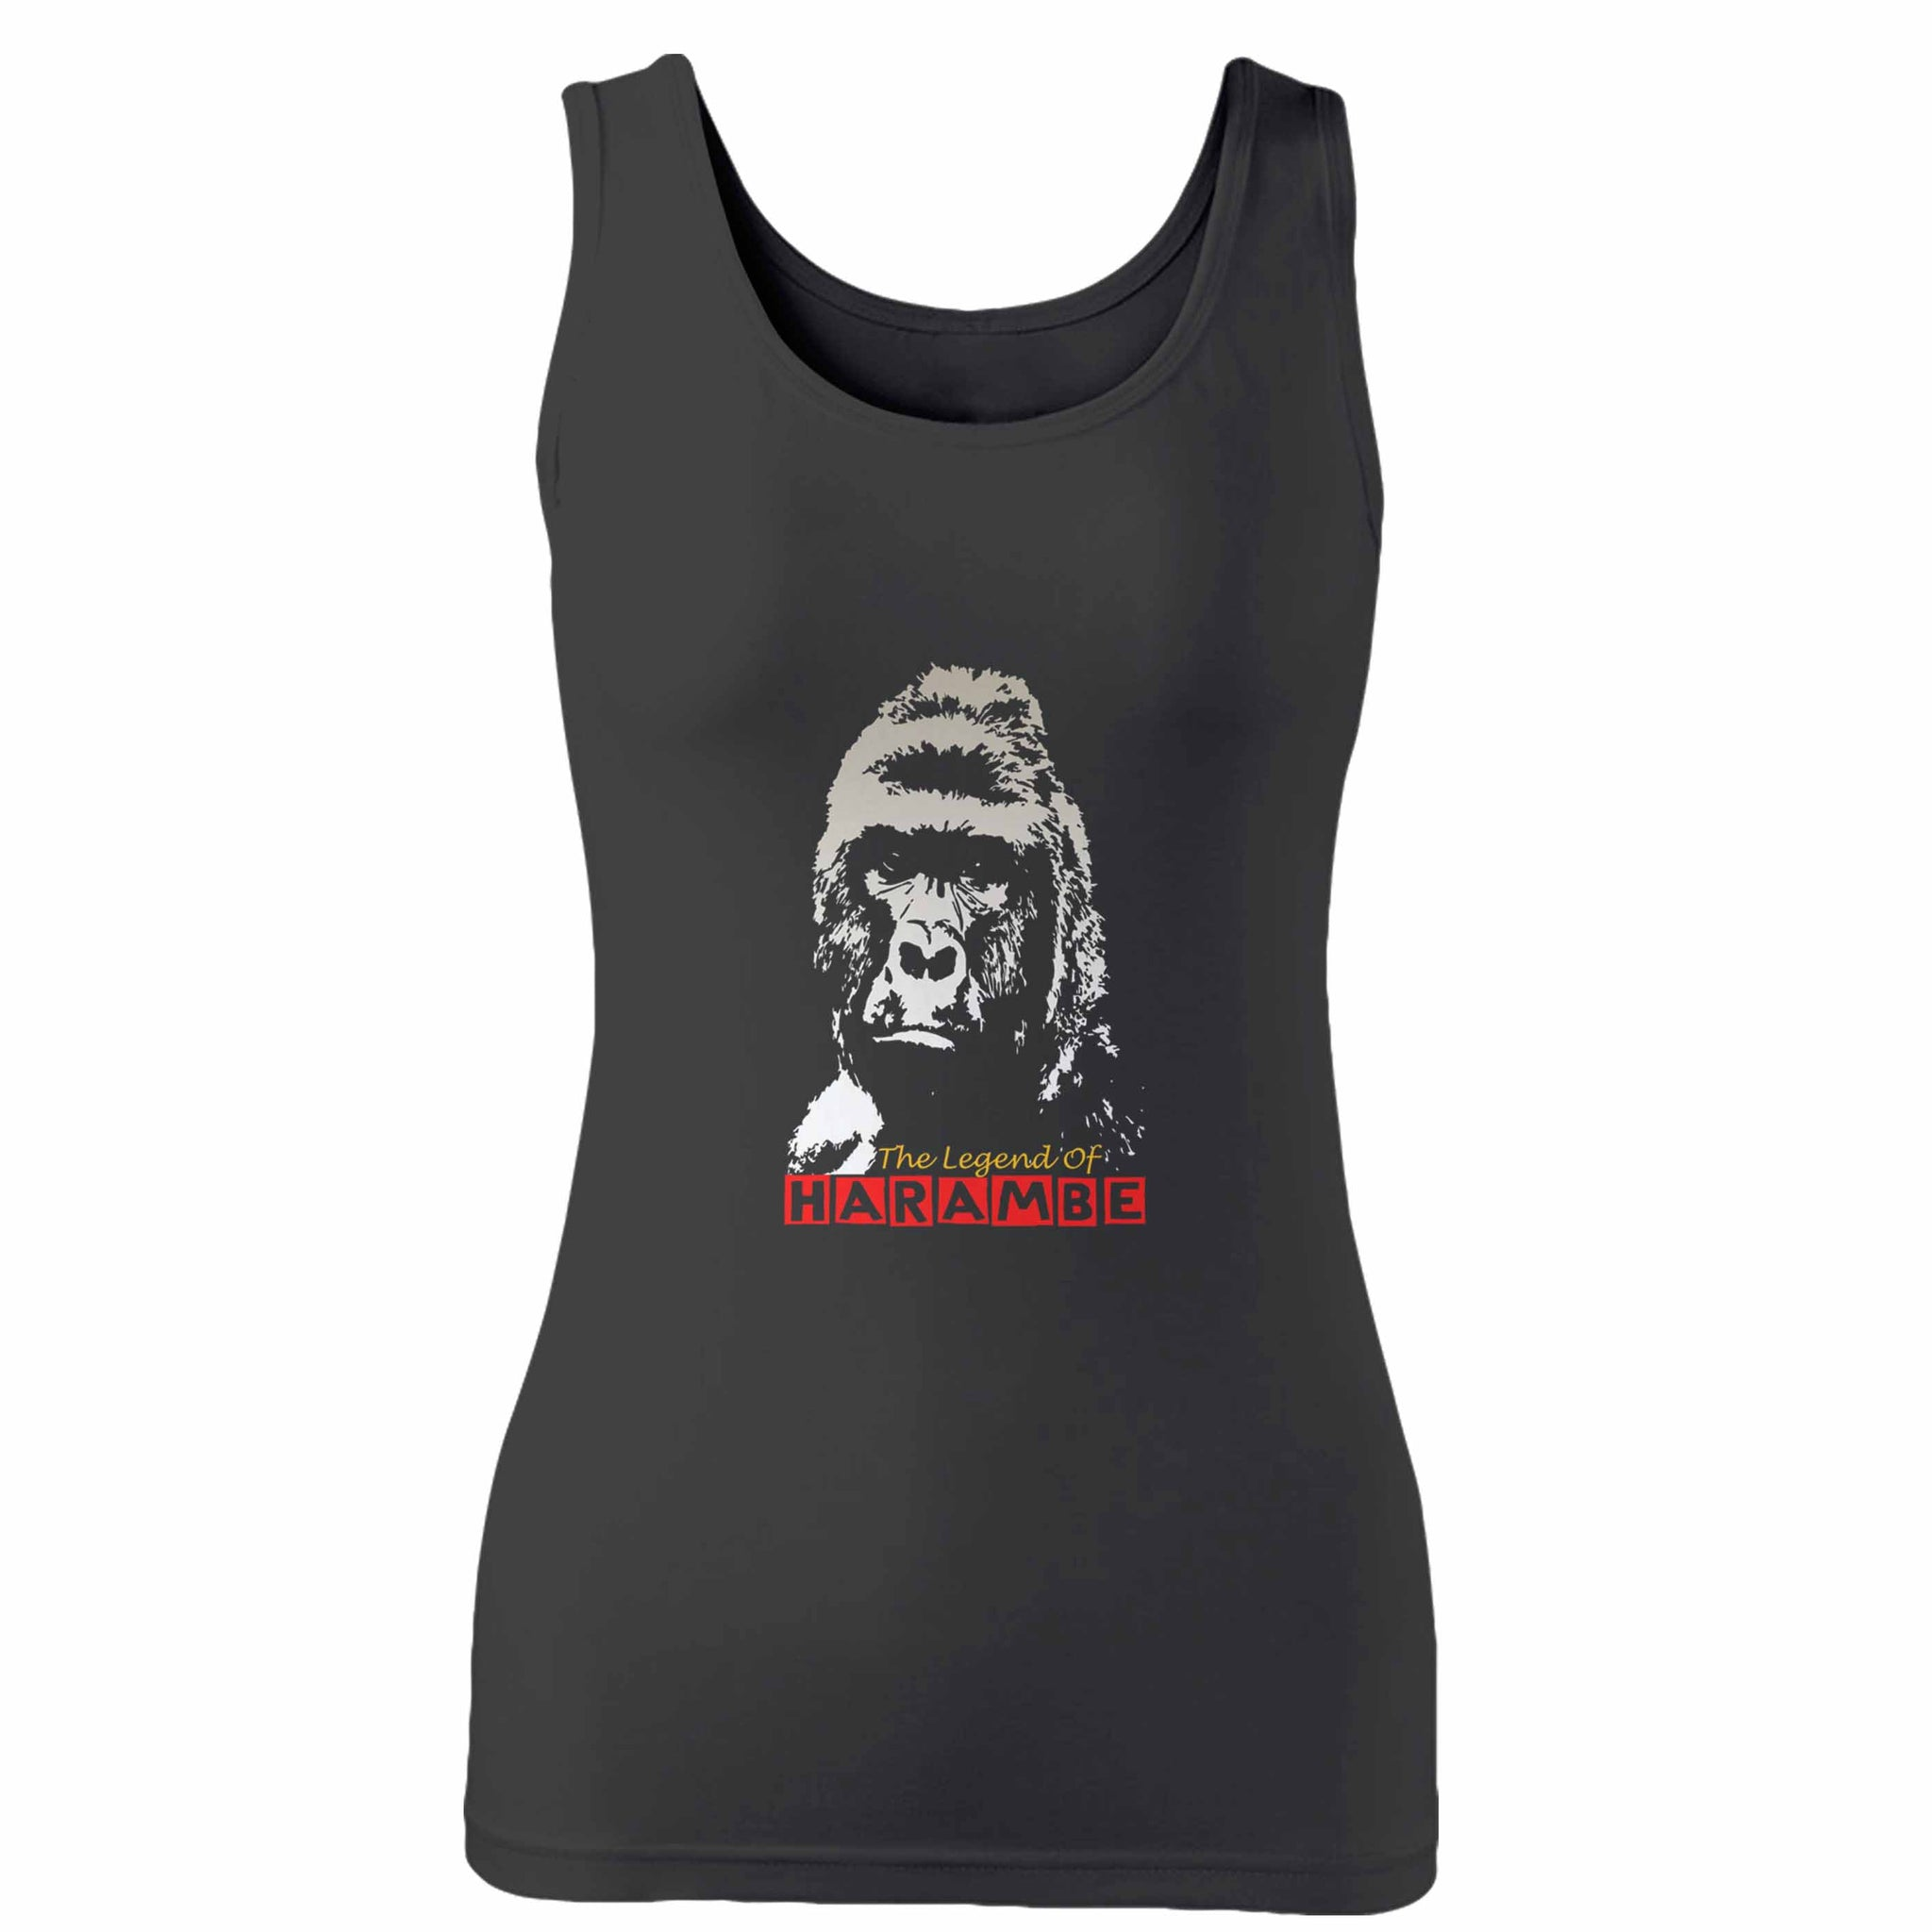 The Legend Of Harambe Woman's Tank Top